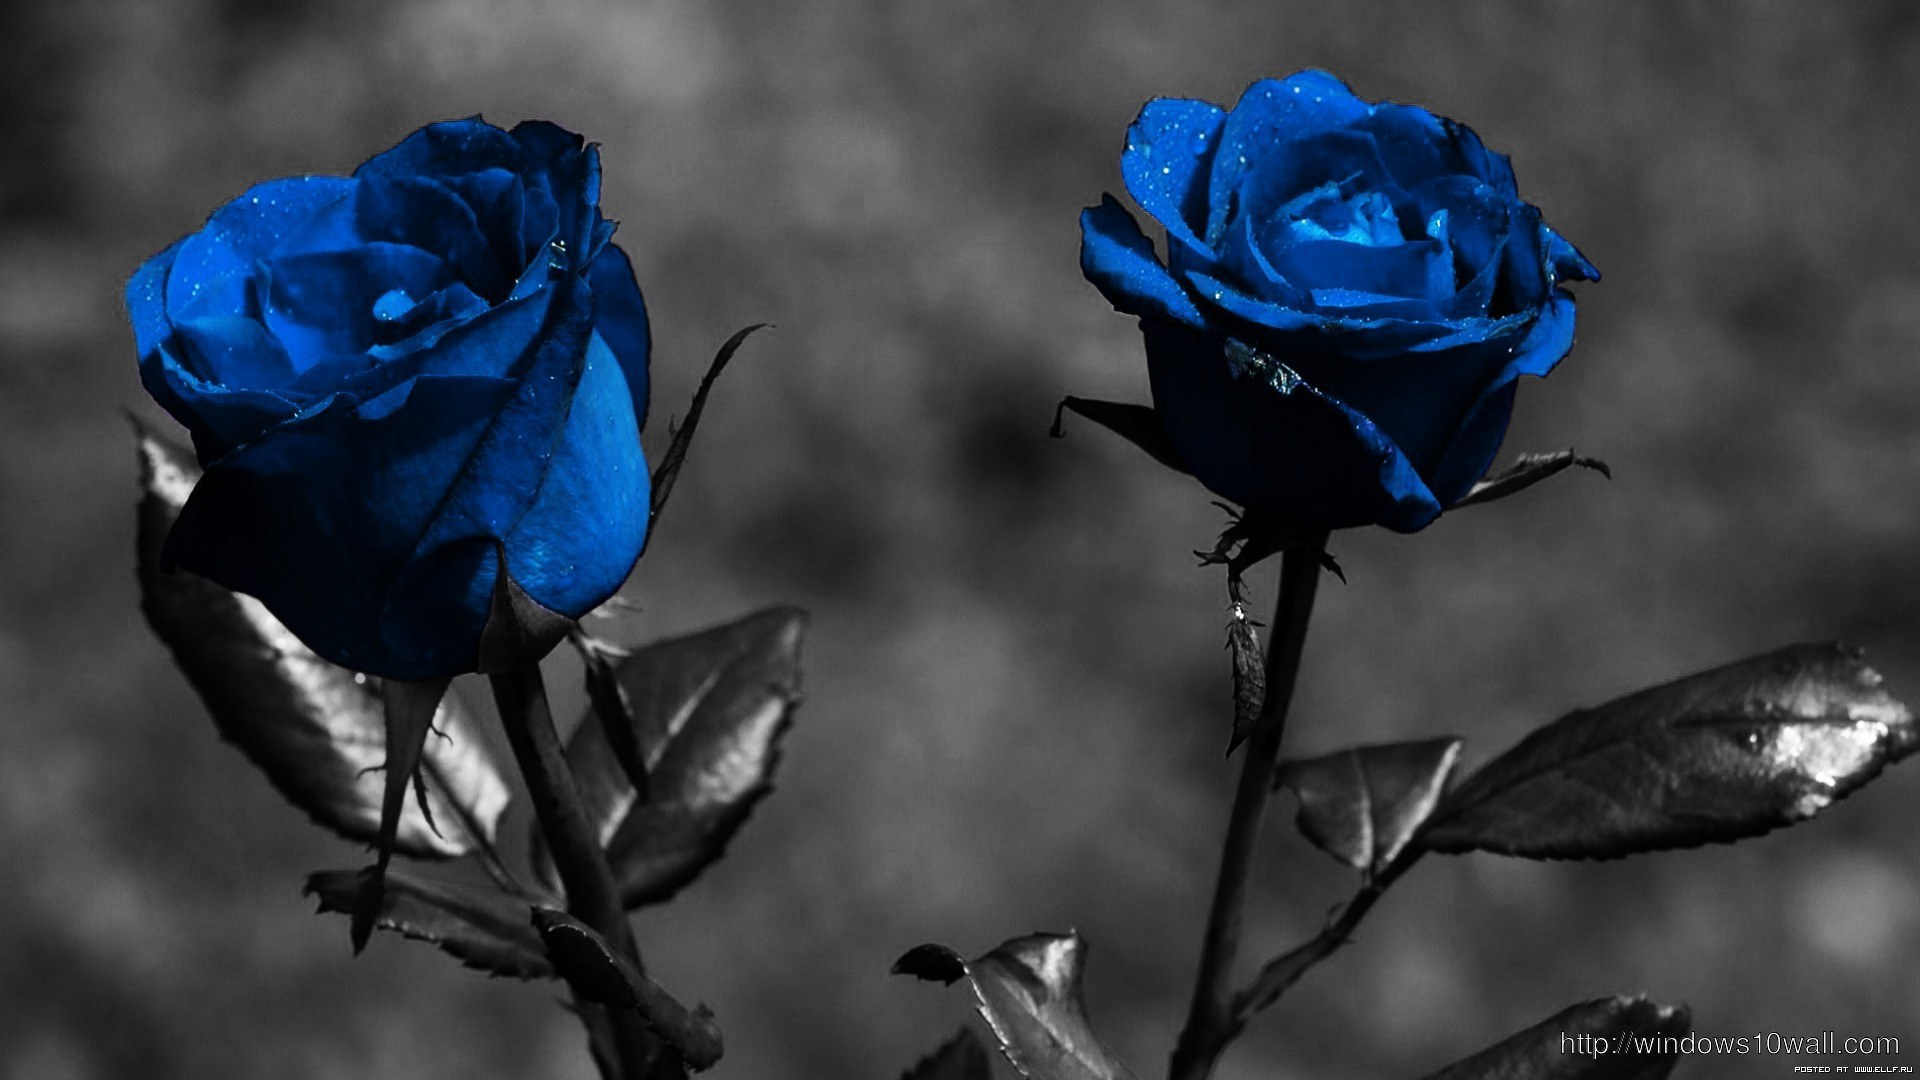 Sexy Blue Rose Flower Picture Windows 10 Wallpapers